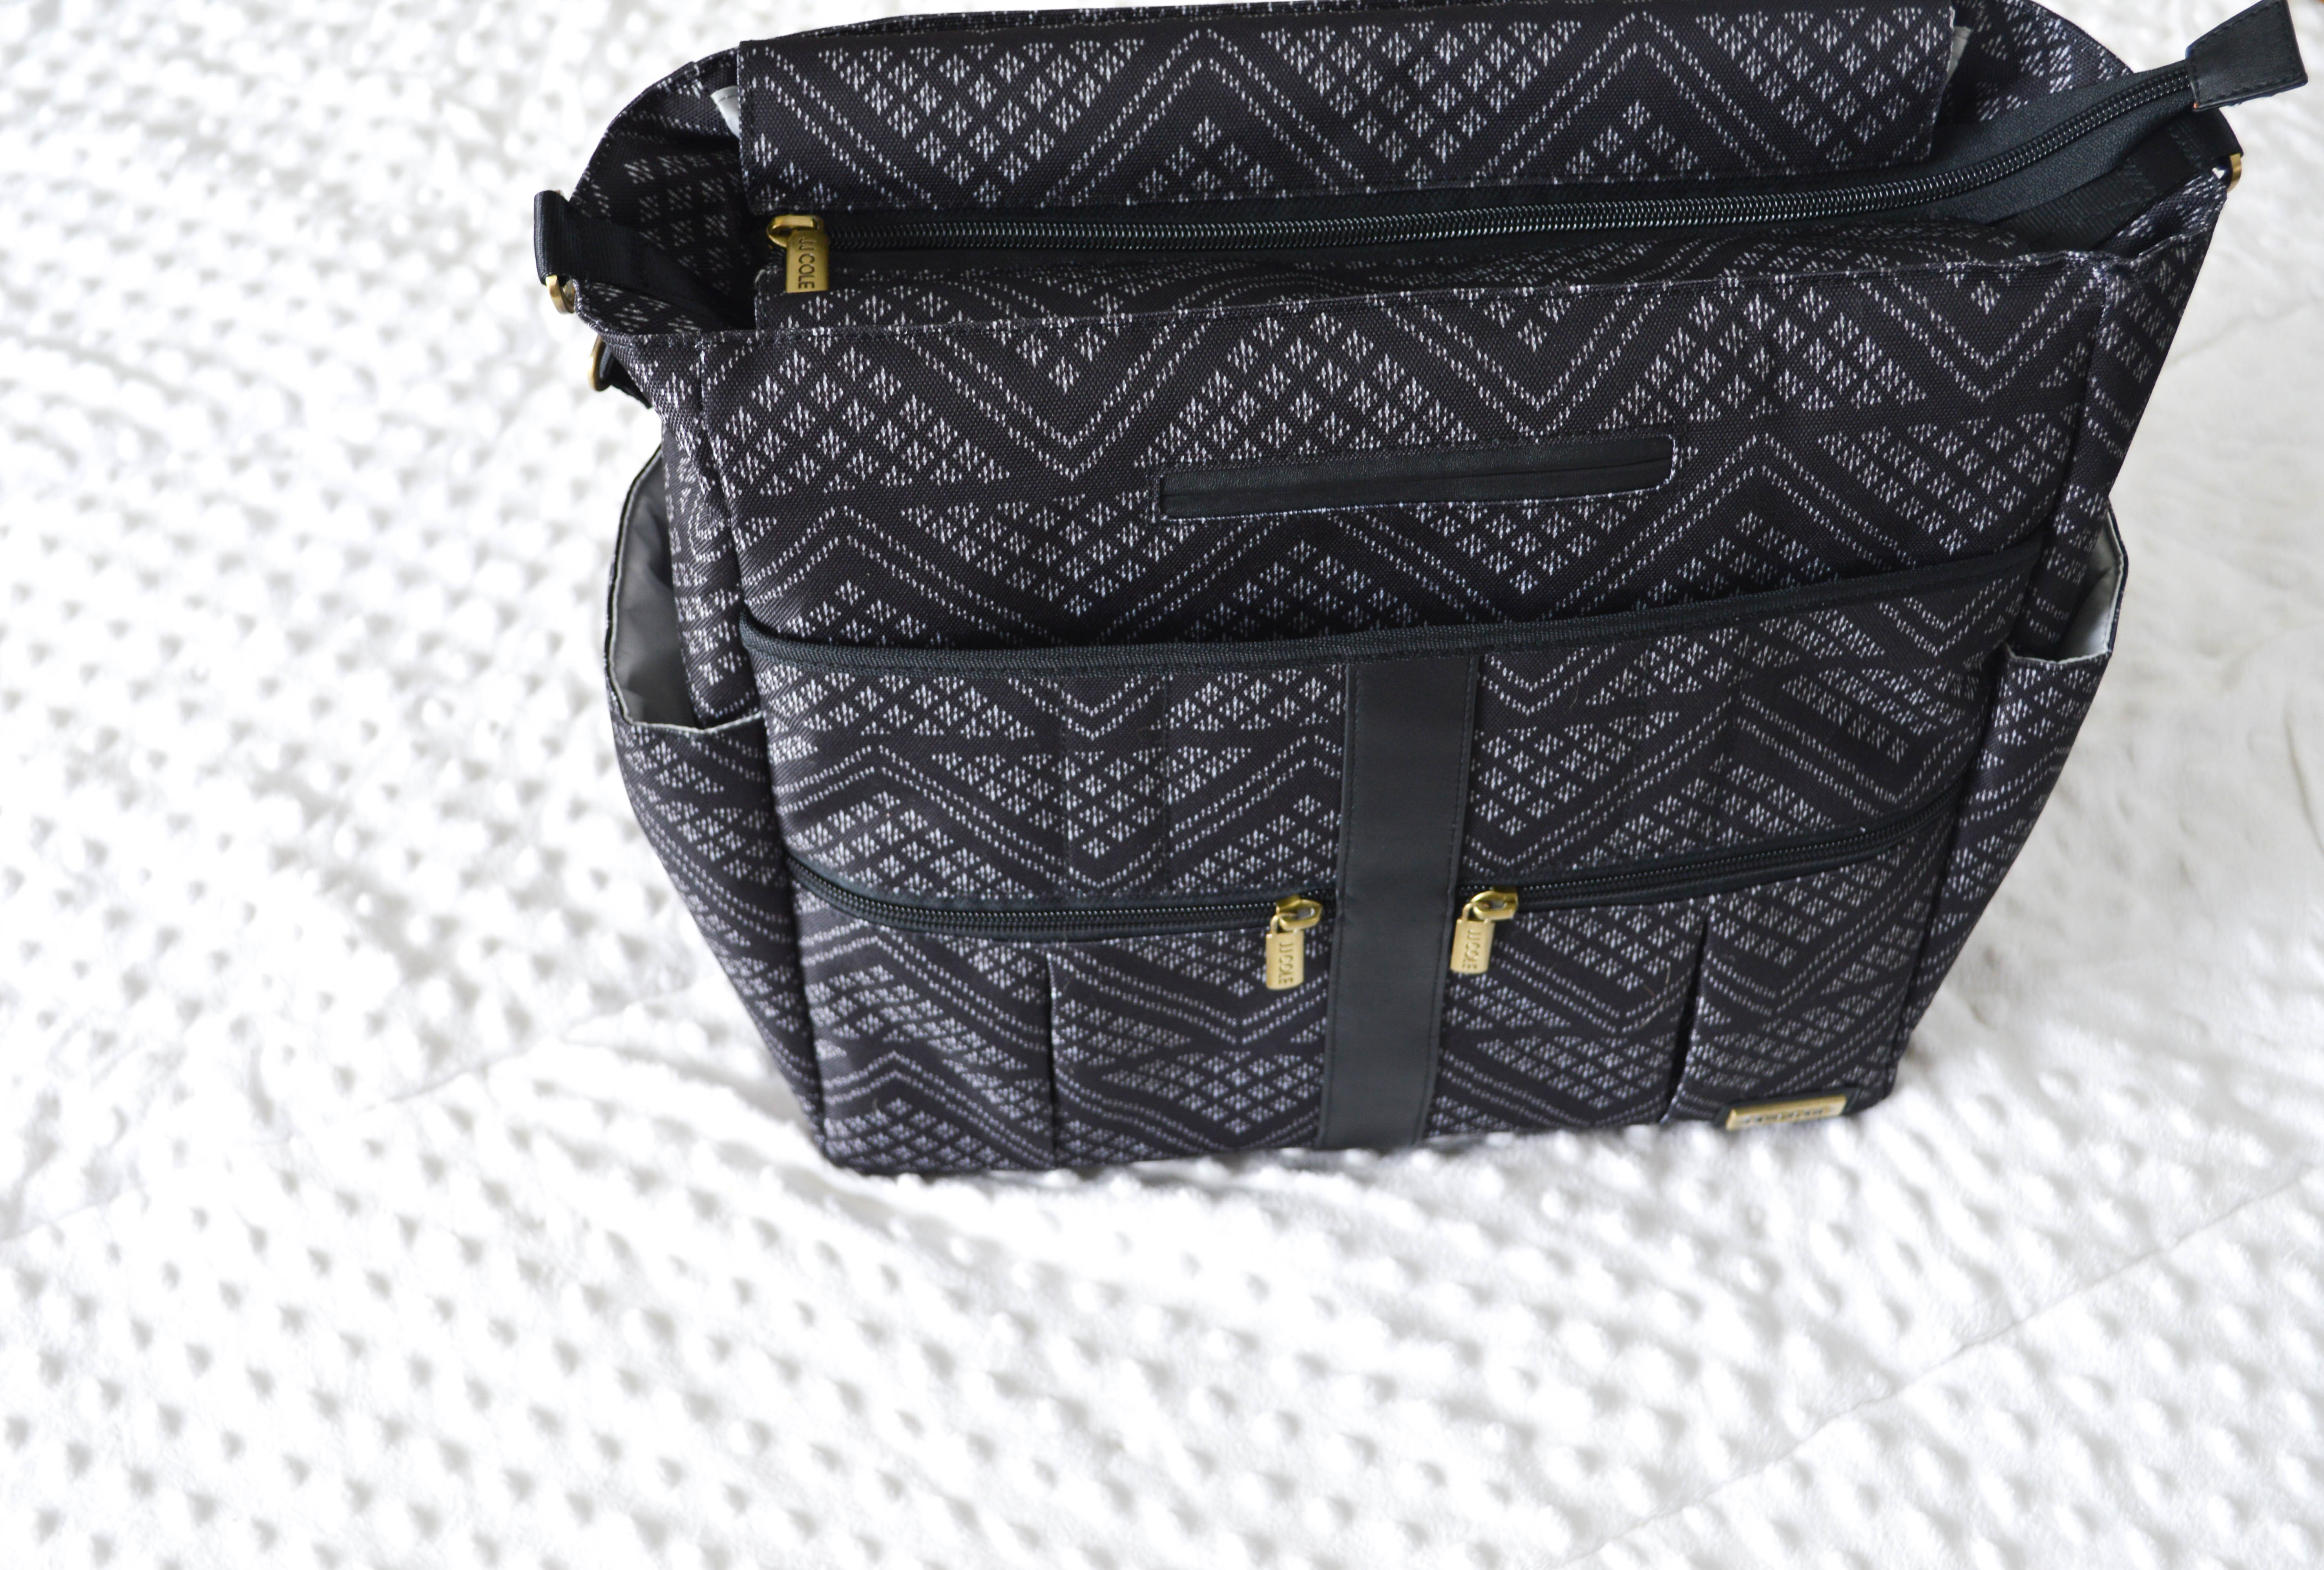 JJ Cole Backpack Diaper Bag review featured by popular Denver lifestyle blogger, All Things Lovely